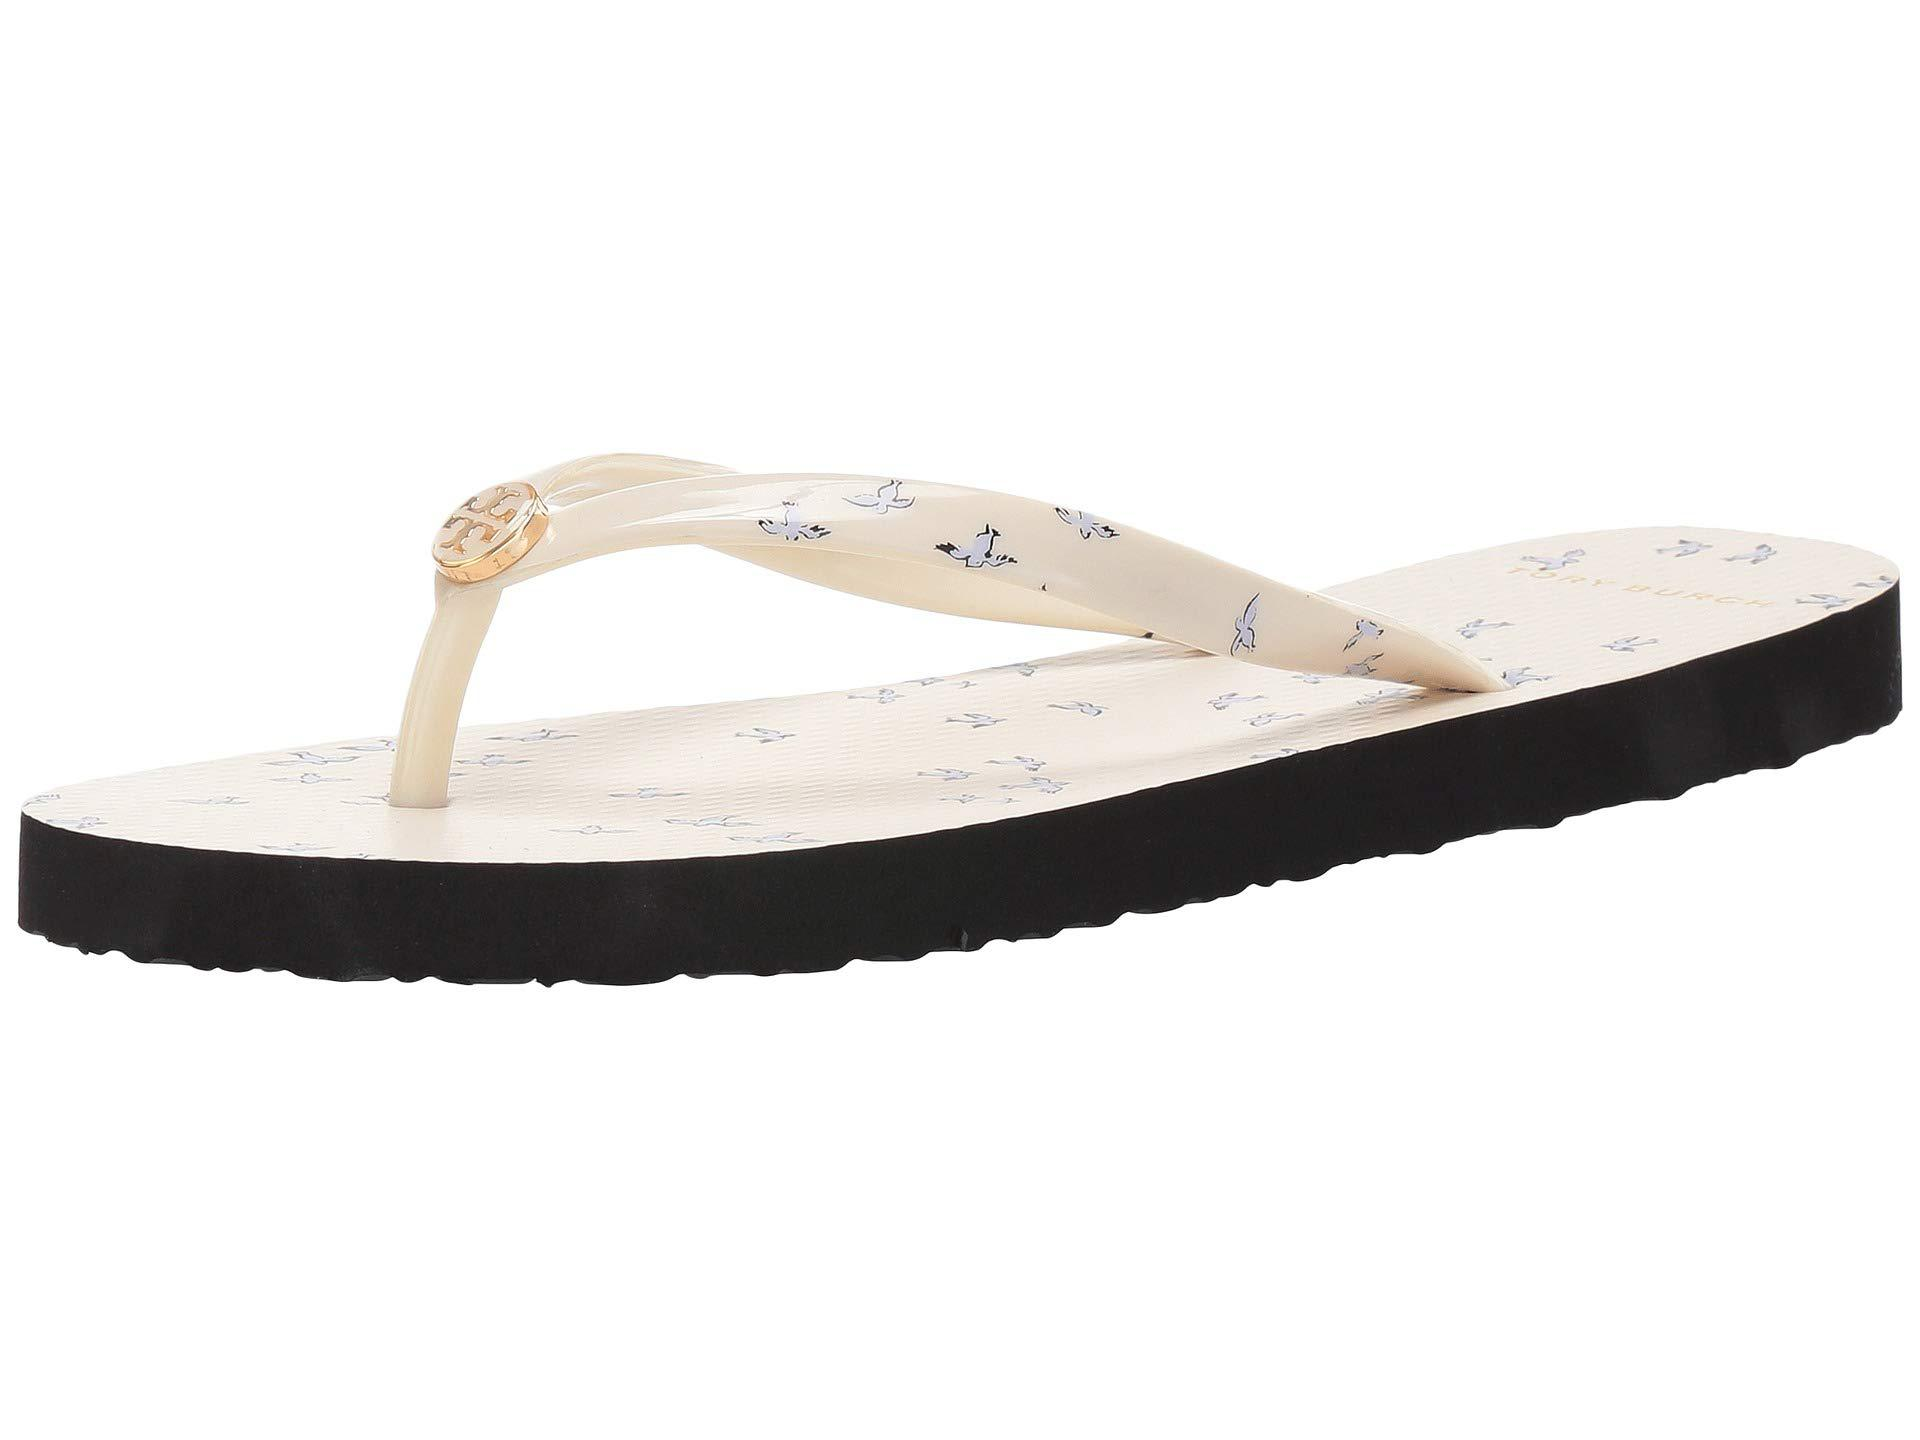 9f311abcd Tory Burch - White Printed Thin Flip-flop (mint Early Bird) Women s  Sandals. View fullscreen